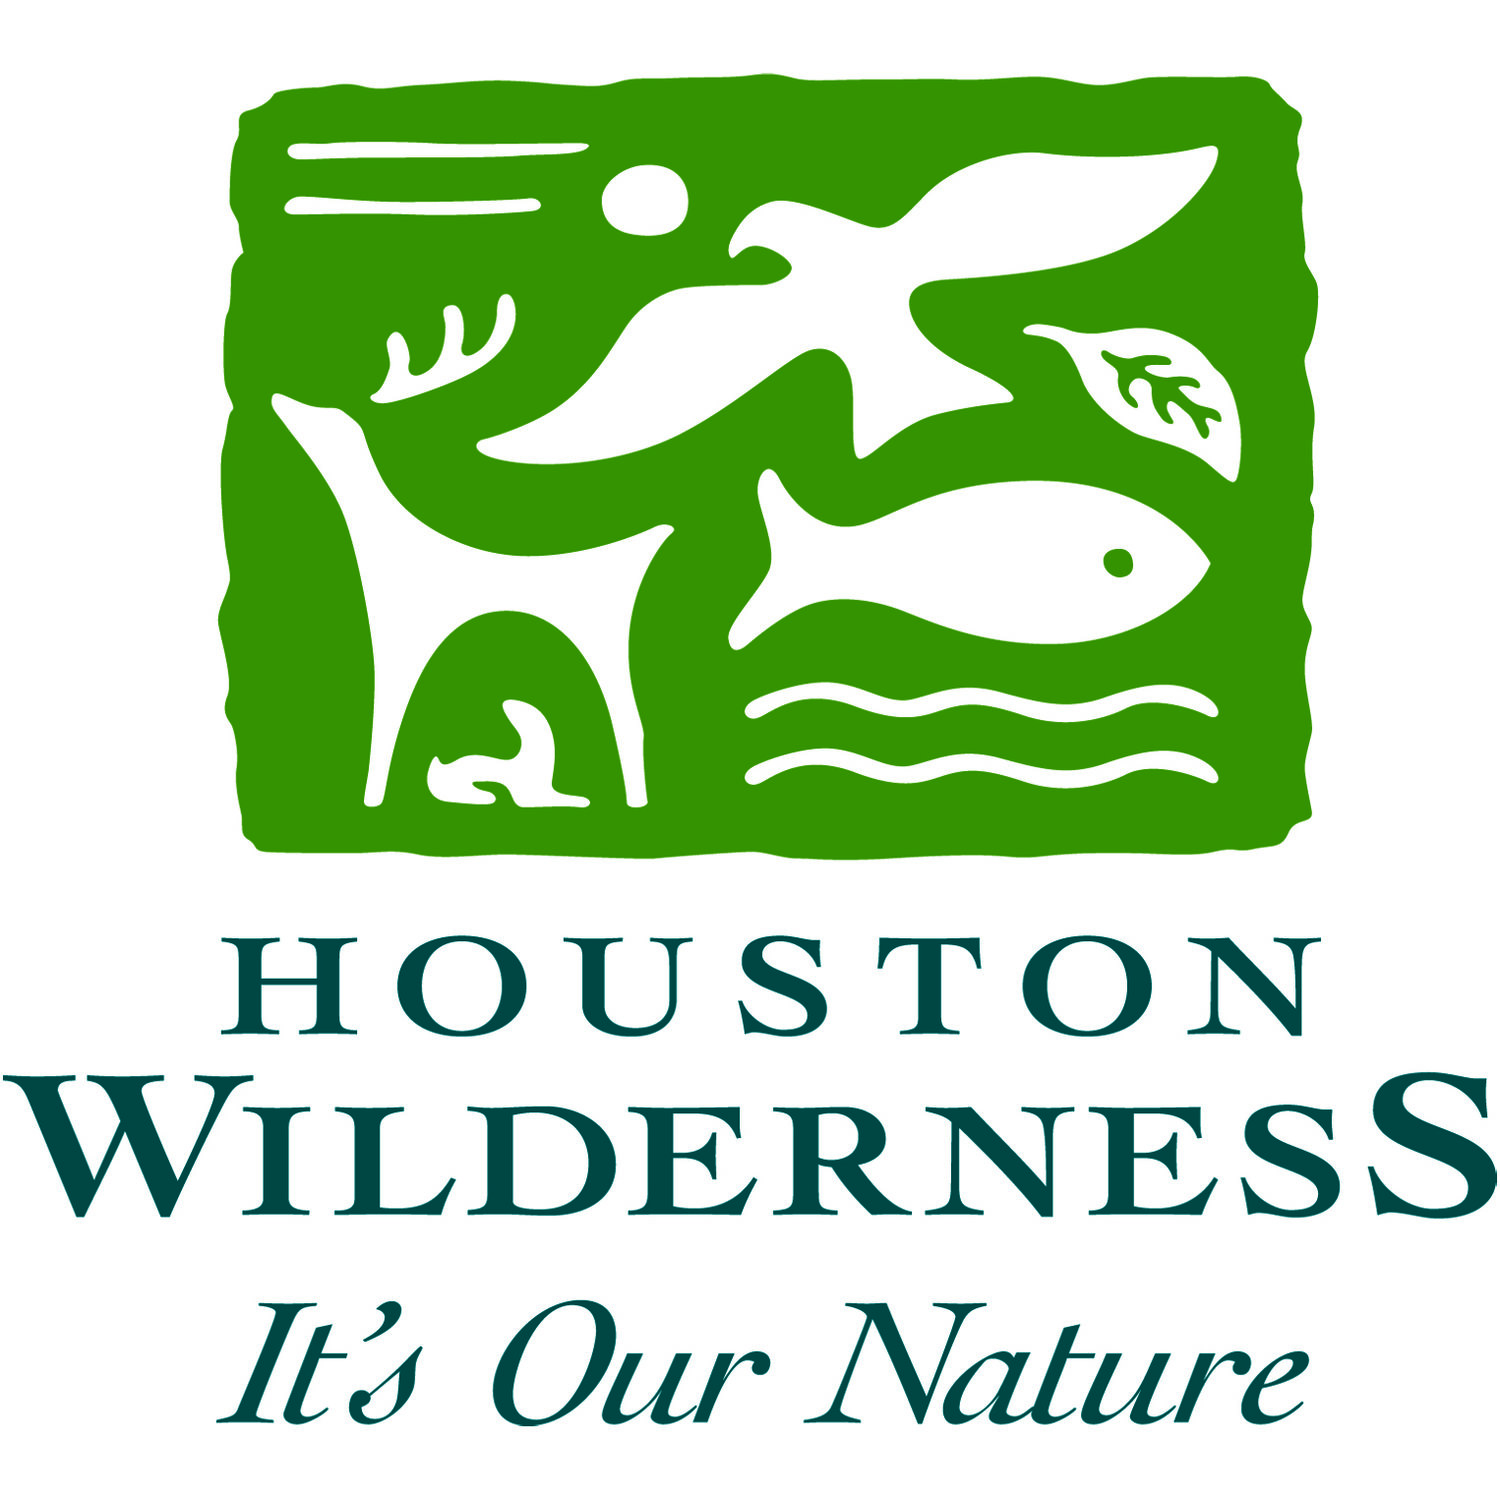 Gulf-Houston Regional Conservation Plan